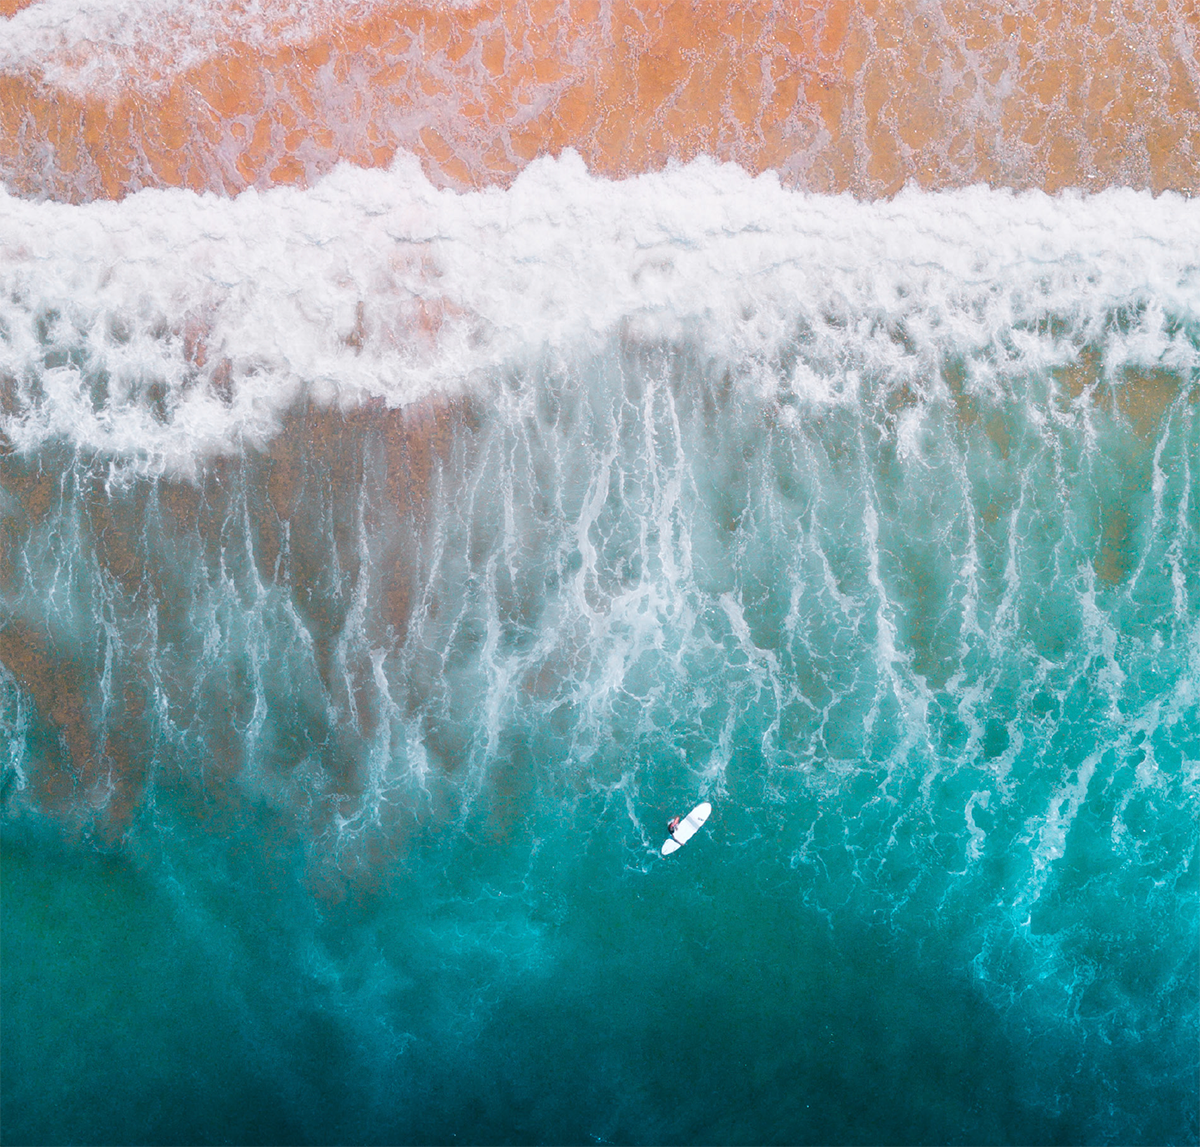 Arial shot of beach shore, a person is surfing. Evgeniya Savina/Stocksy